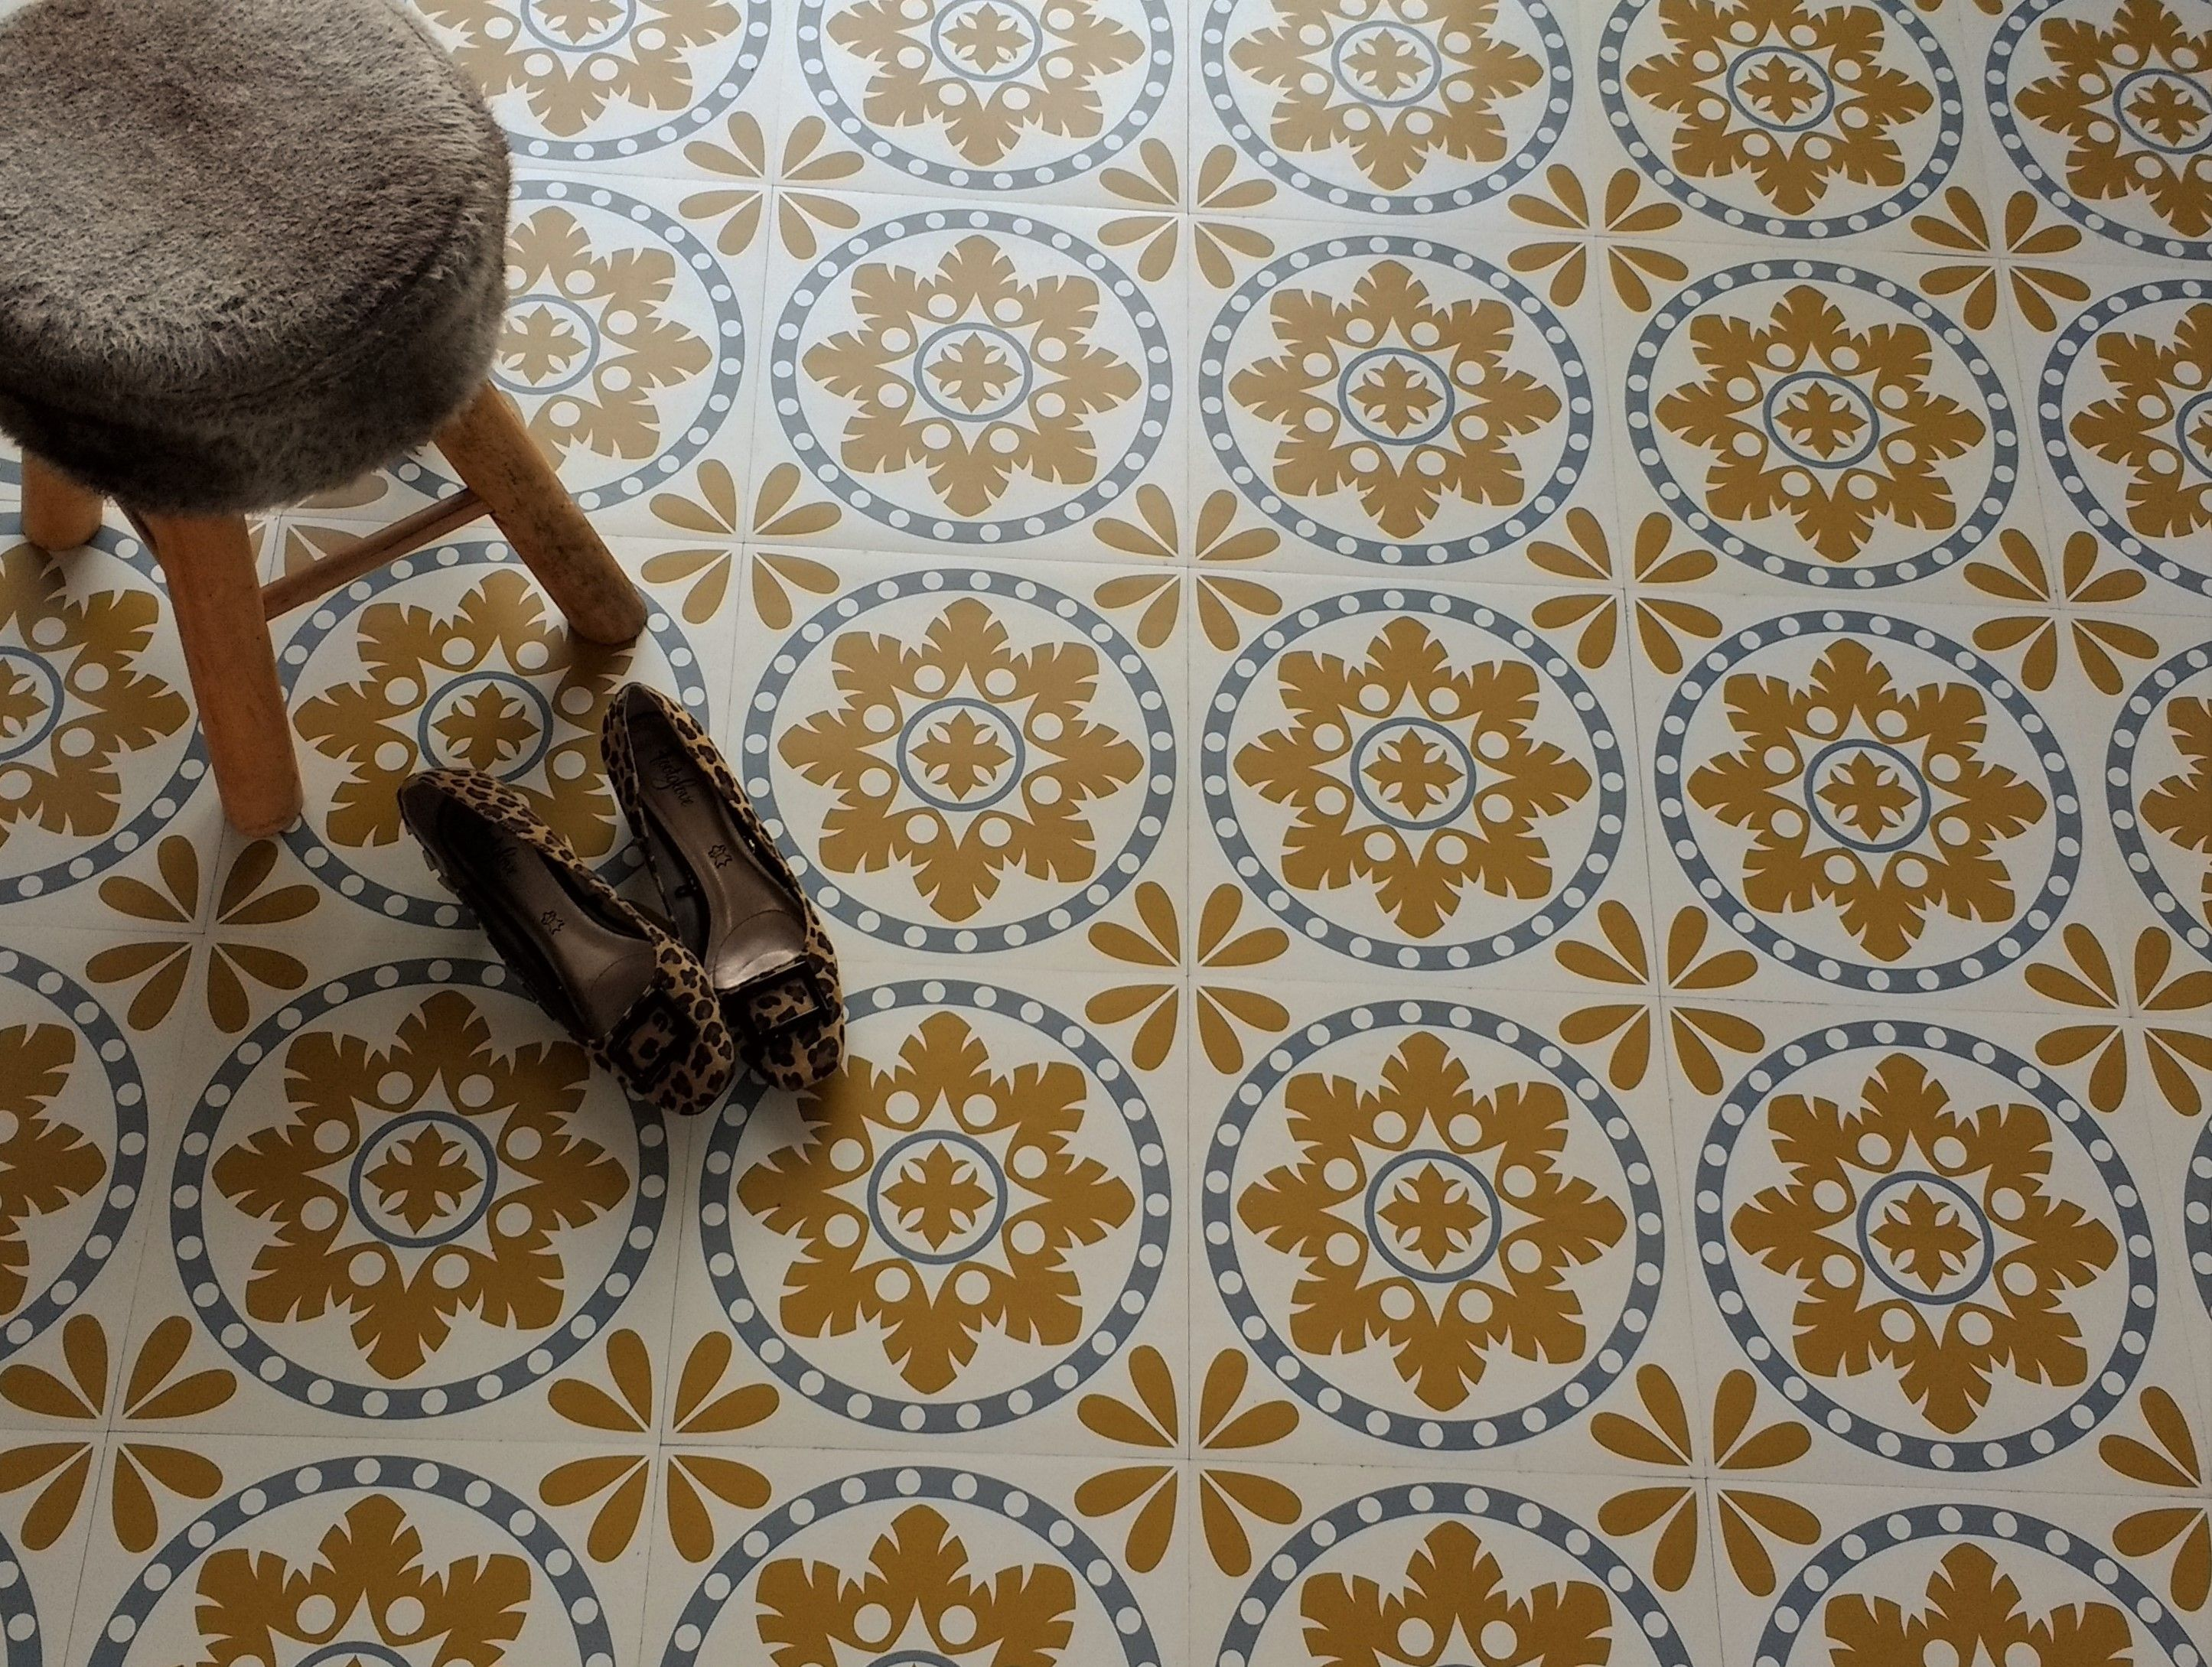 Sorzano vinyl floor tiles vinyl floor tiles pinterest sorzano vinyl flooring retro vinyl floor tiles for your home dailygadgetfo Images